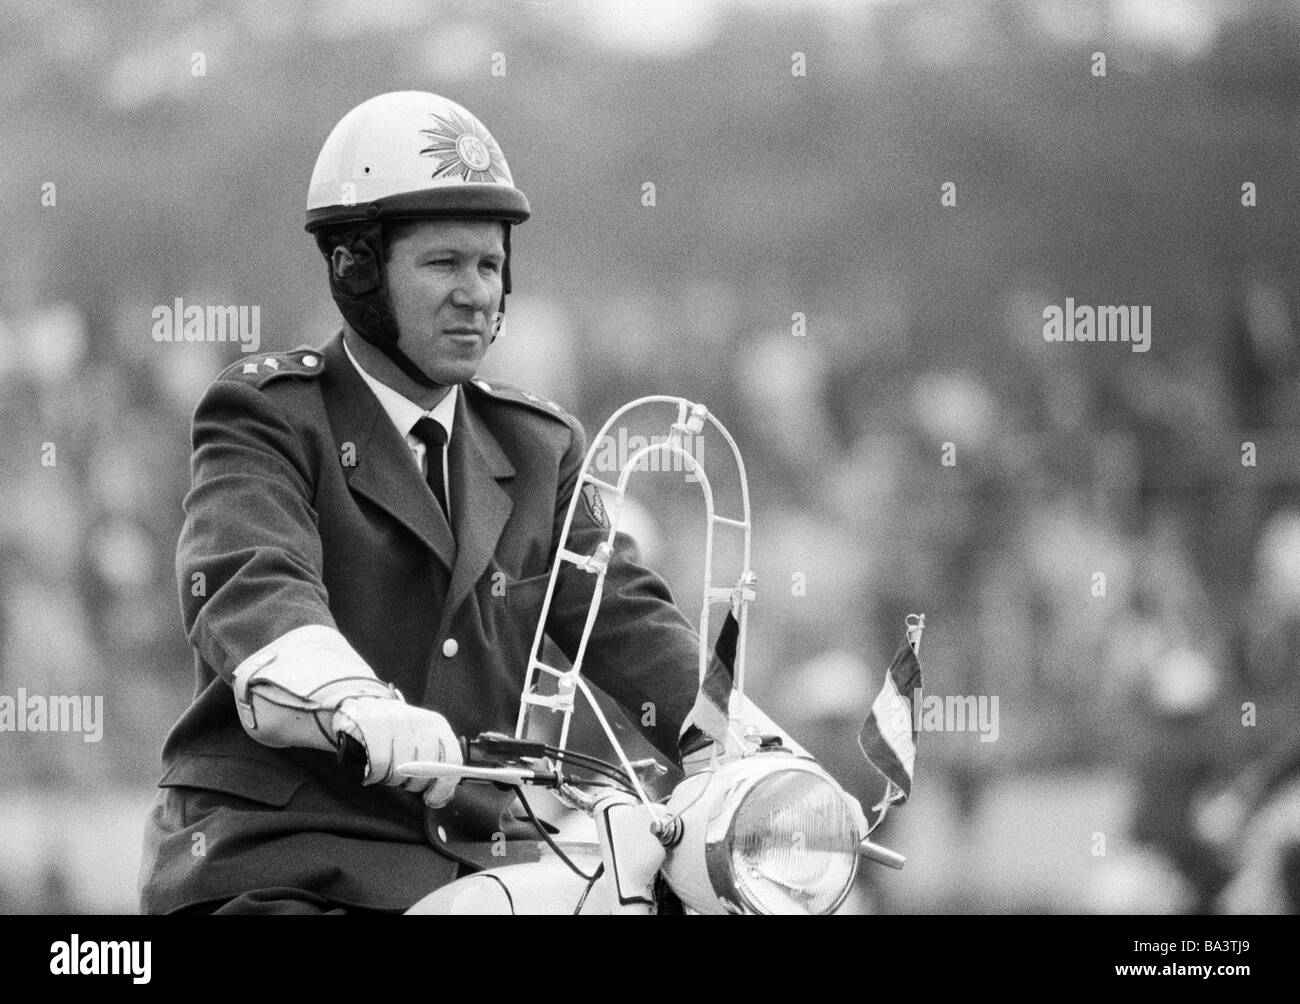 Sixties, black and white photo, event, 3rd International Police Sports and Music Festival 1966 in the Niederrhein - Stock Image